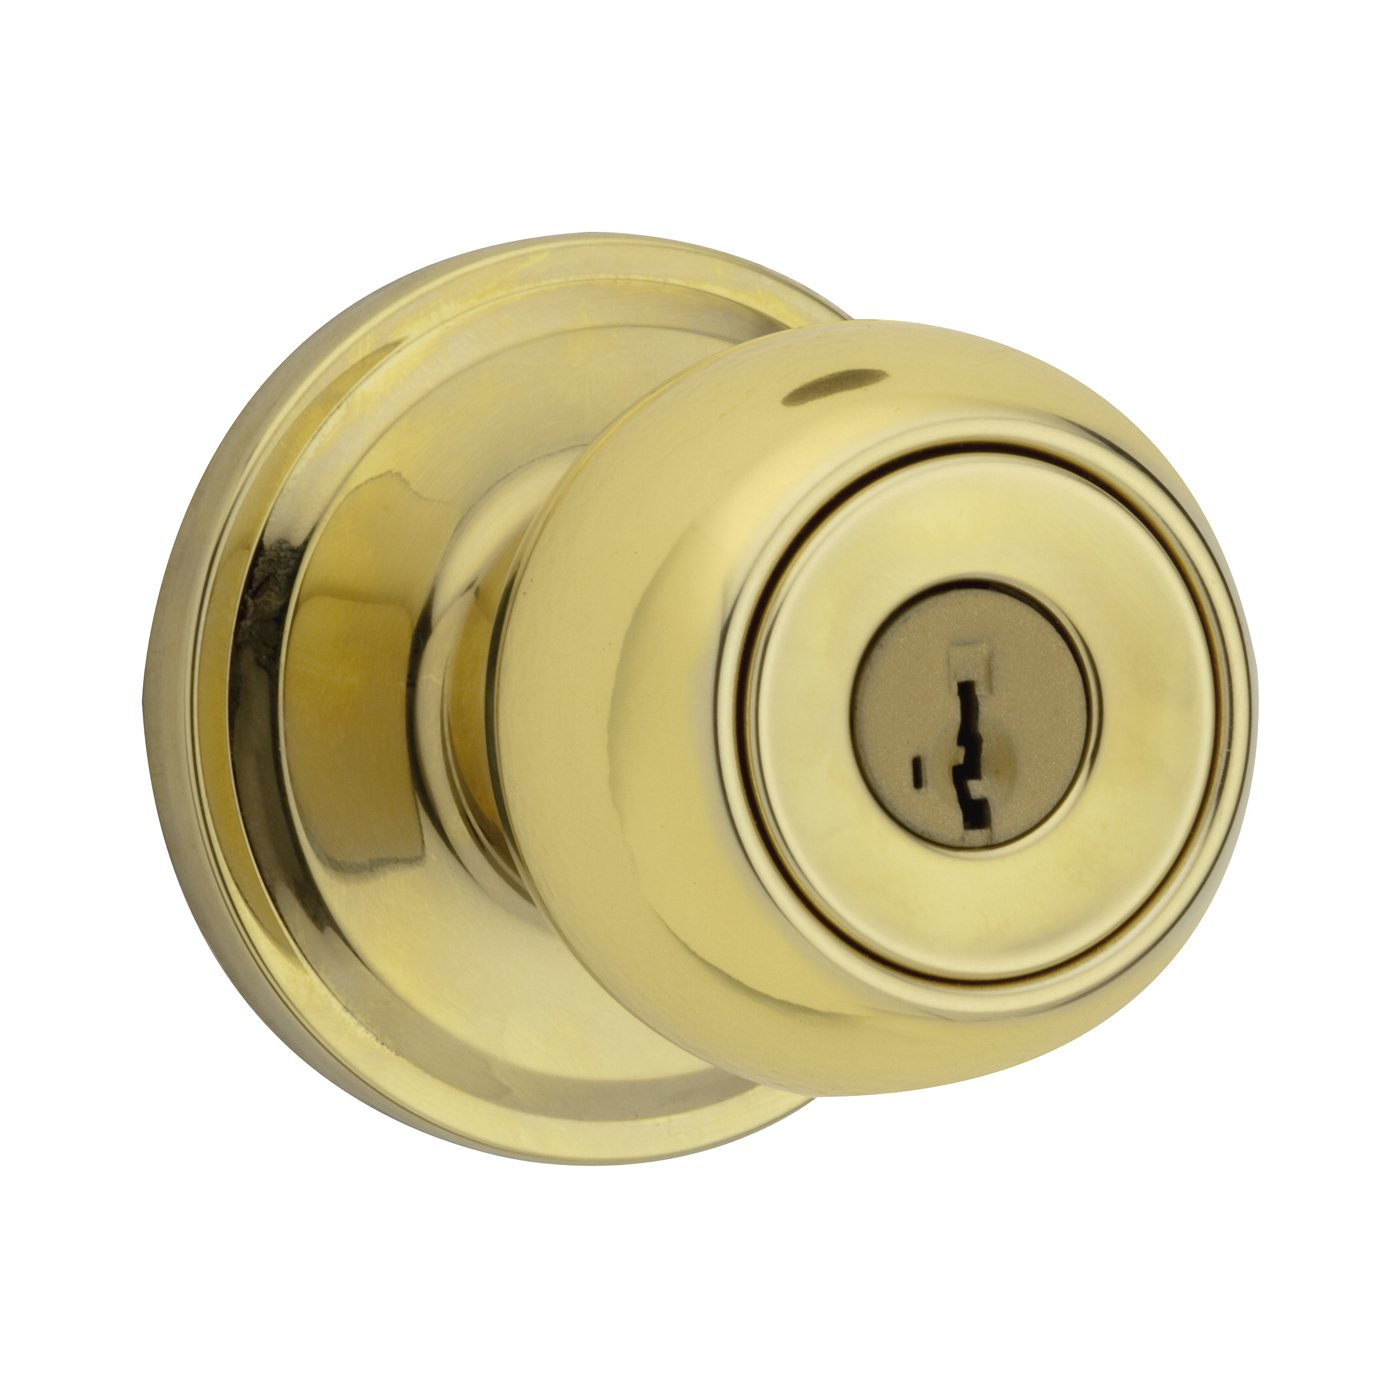 weiser door knobs photo - 5